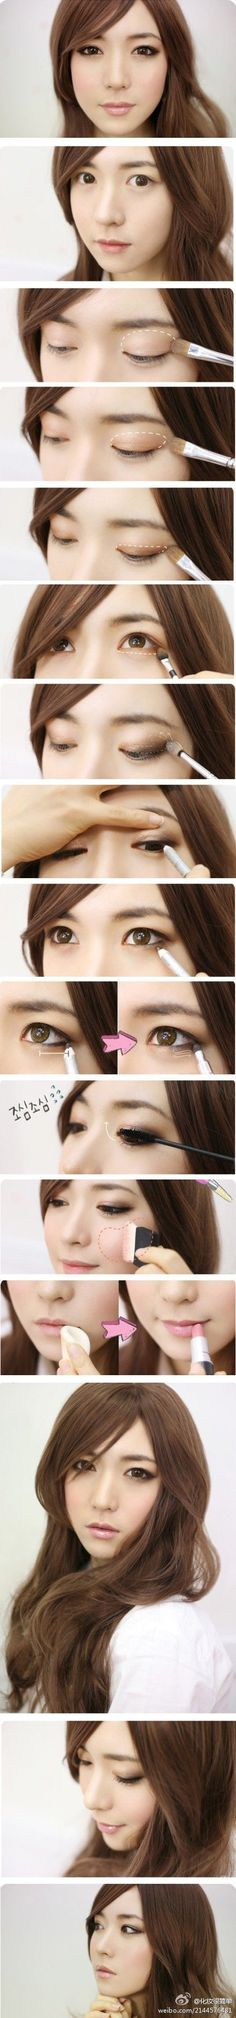 Top 12 Asian Eye Makeup Tutorials For Bride – Famous Fashion Wedding Design Idea - Easy Idea (14)